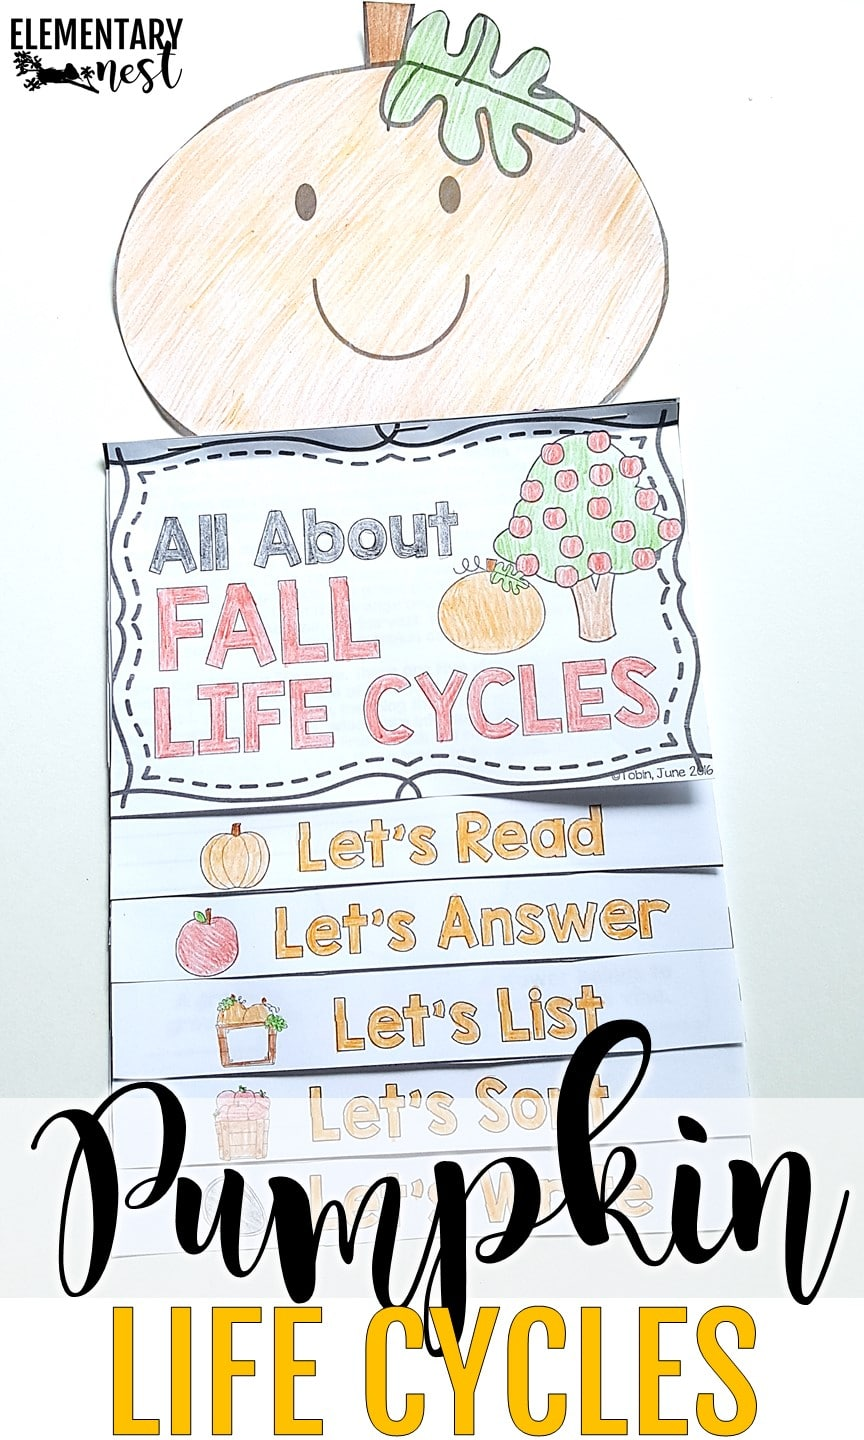 October science lesson plan idea with pumpkin life cycle activity.